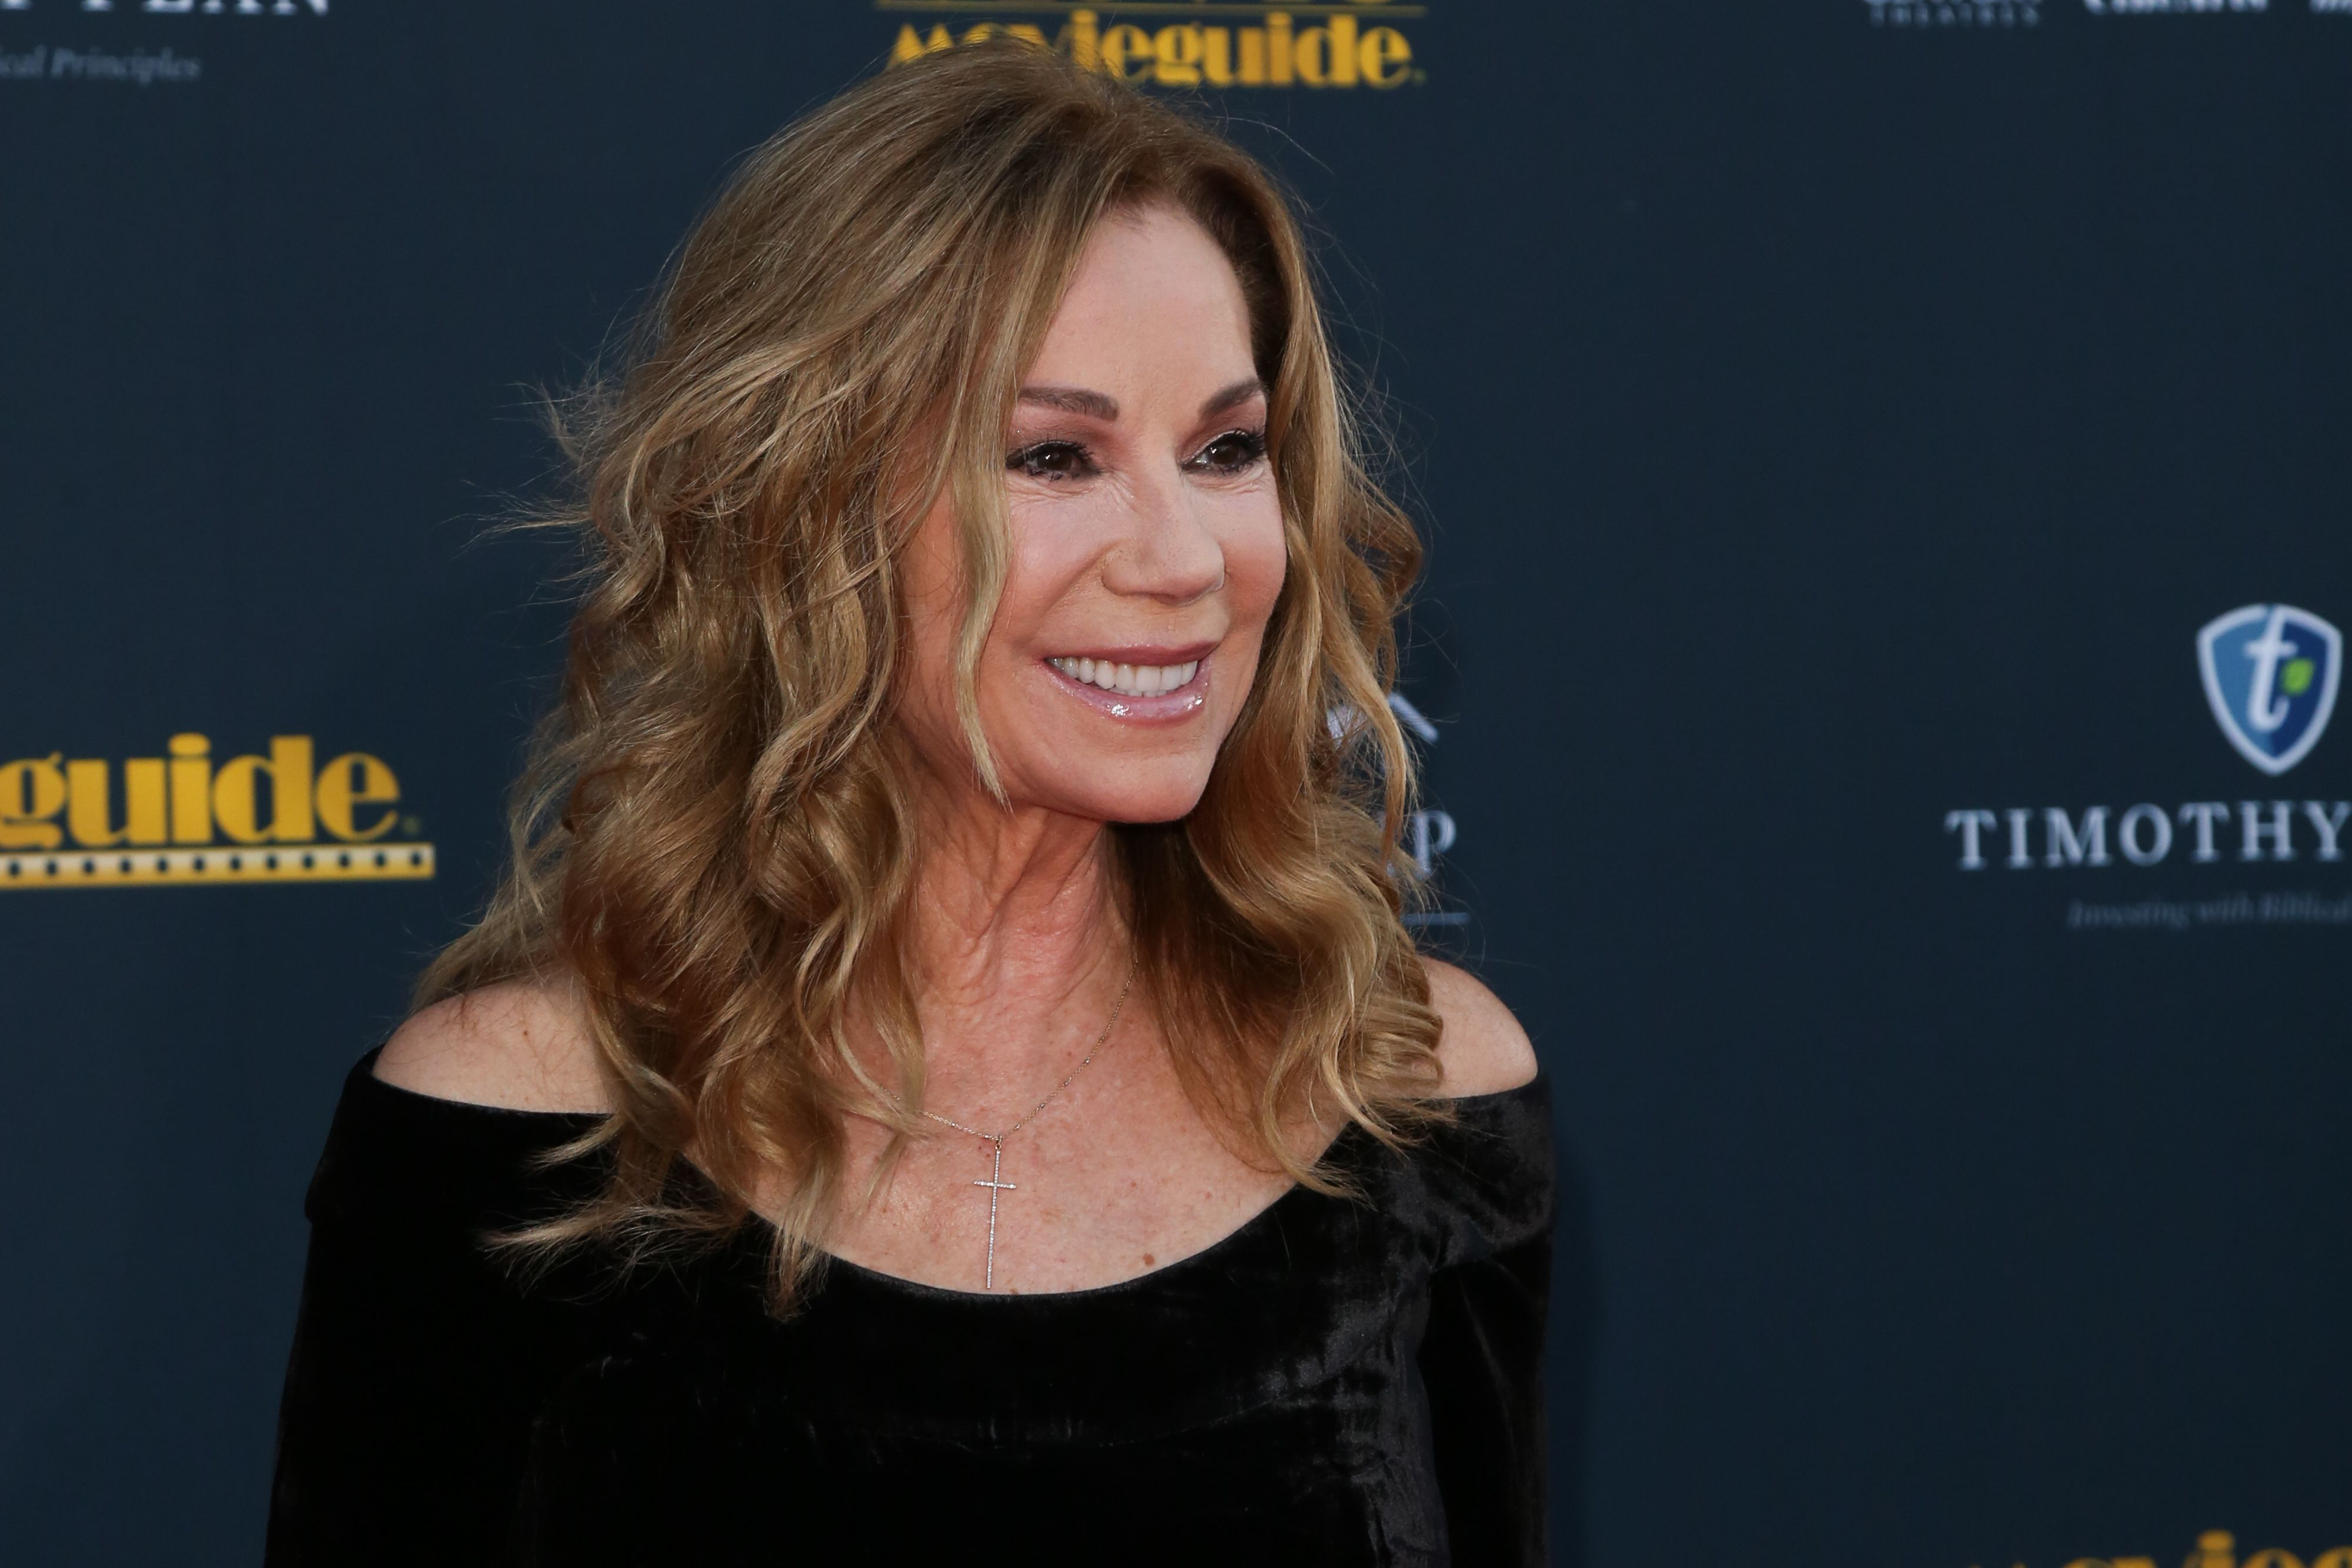 Kathie Lee Gifford at the 28th Annual Movieguide Awards Gala in January 2020 in Los Angeles | Source: Getty Images